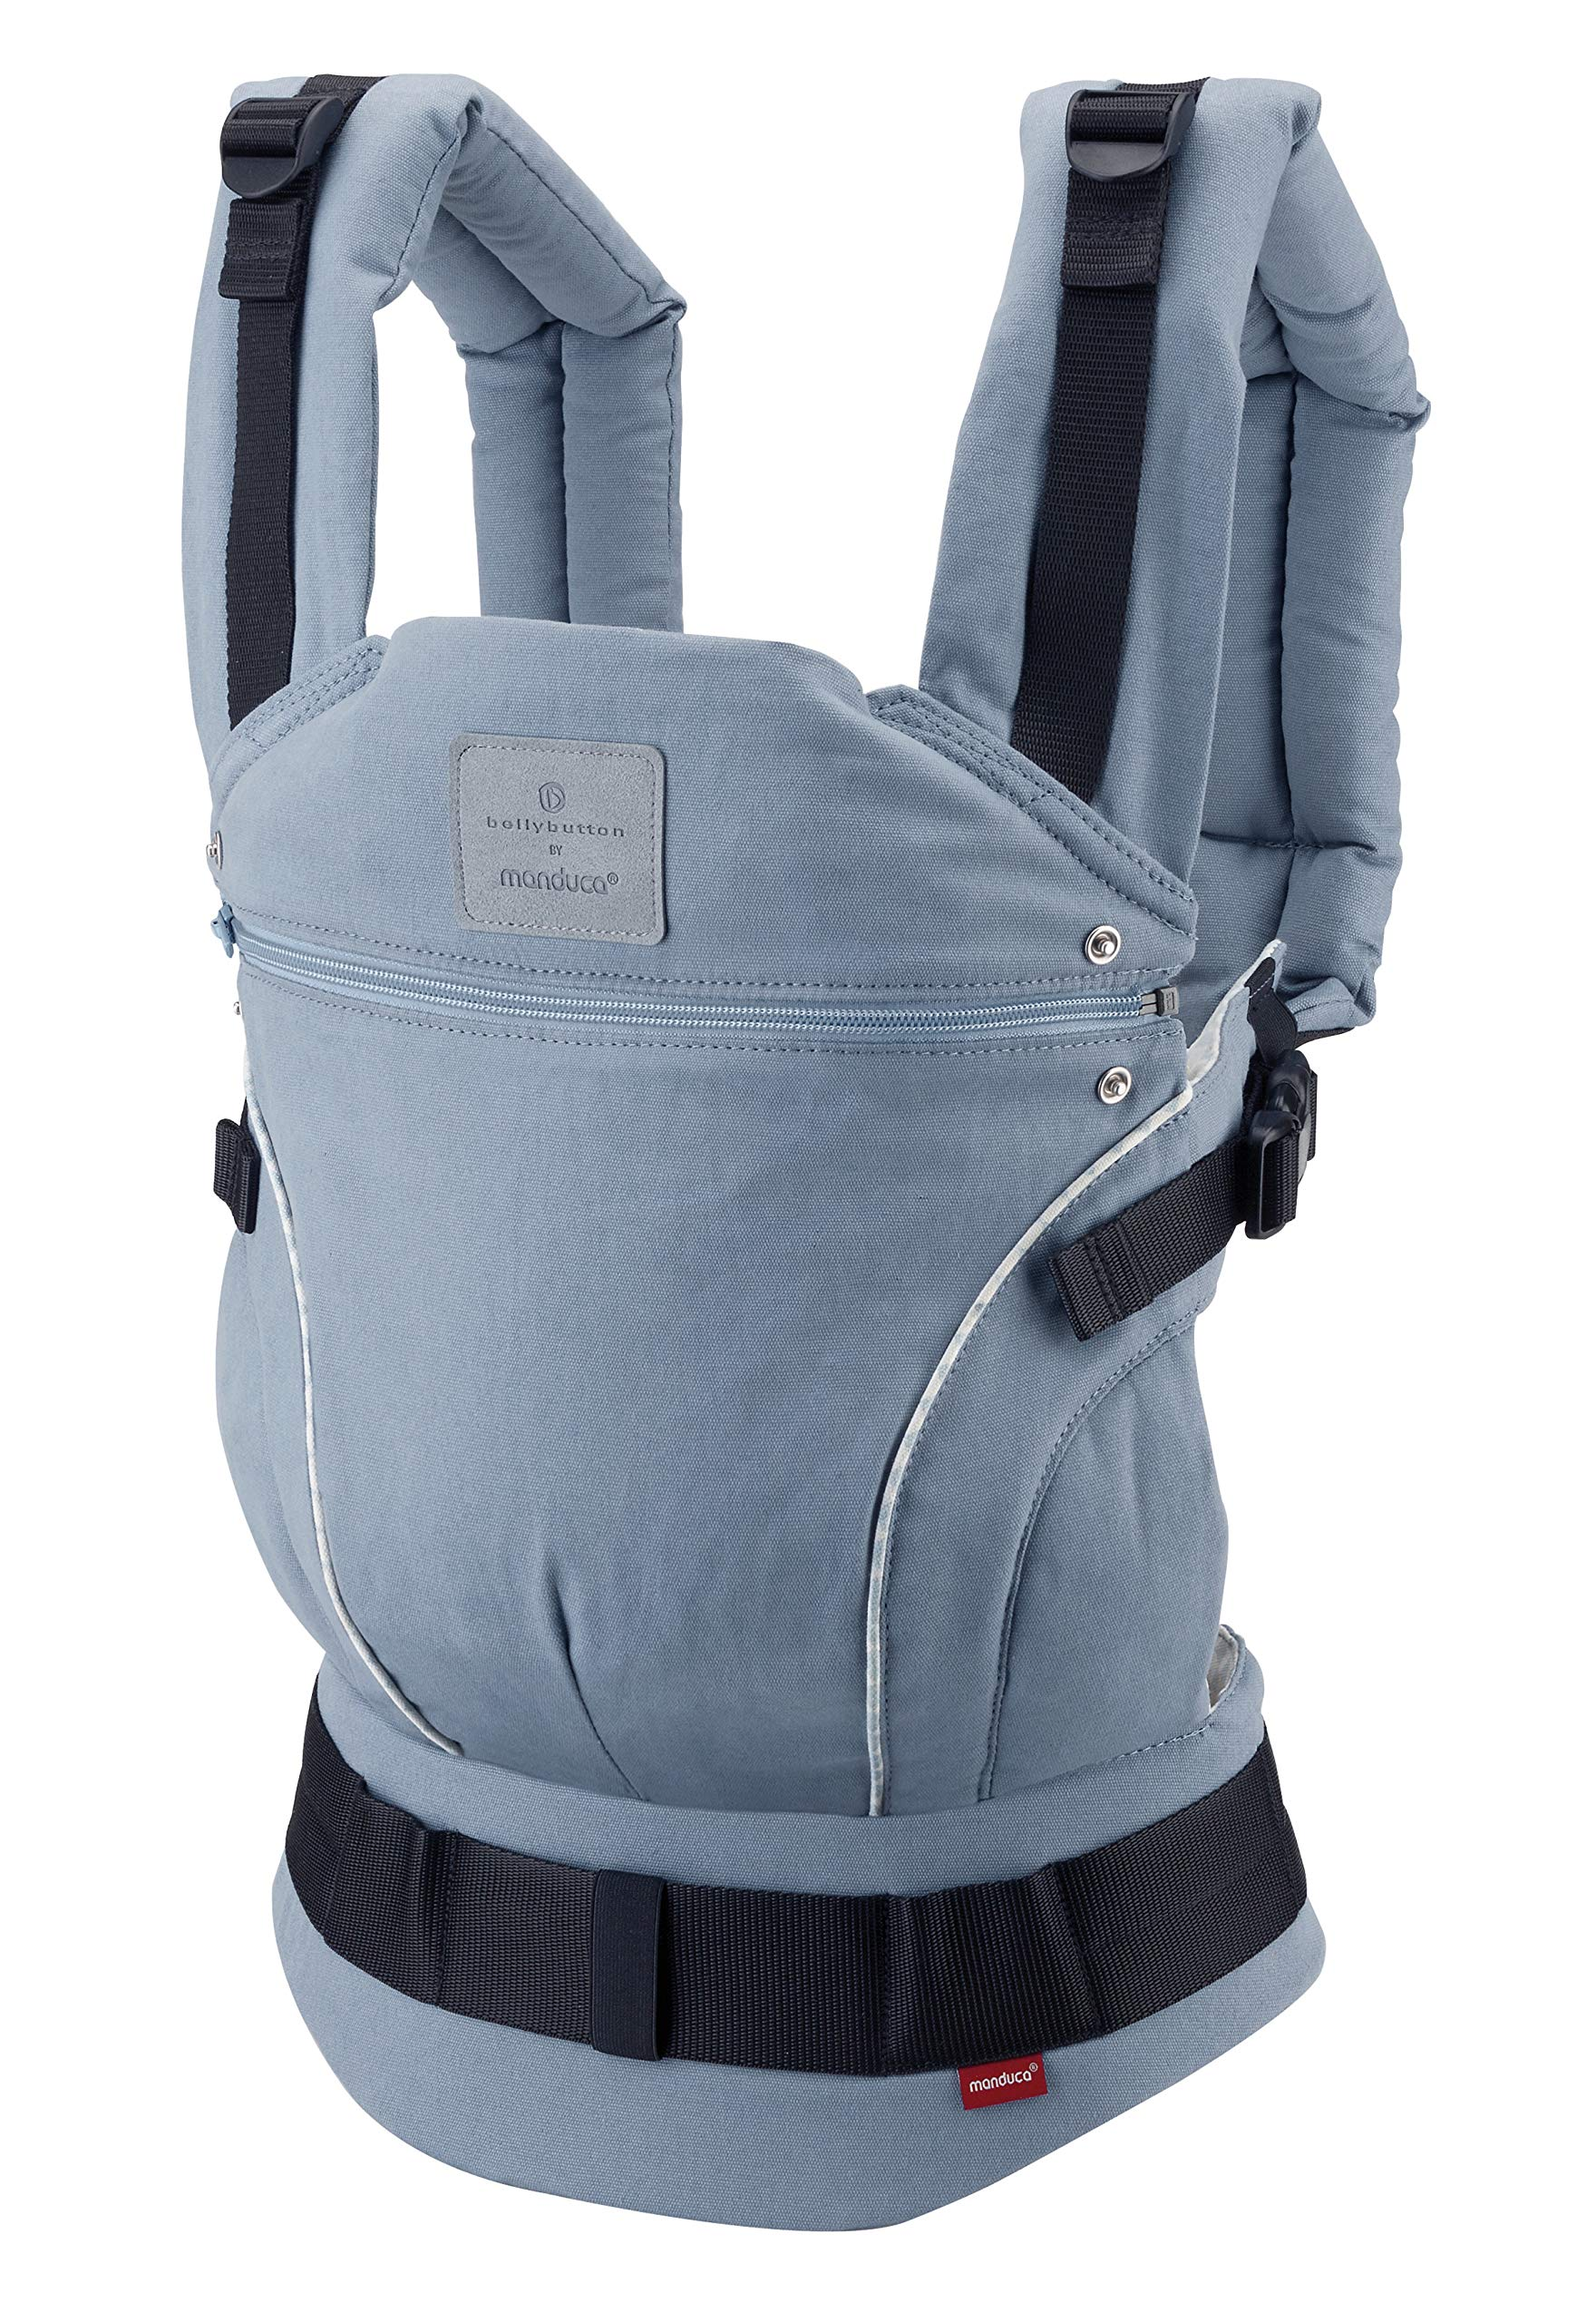 manduca First Baby Carrier > Bellybutton by manduca Edition, SoftCheck Blue < Child Carrier with Ergonomic Waist Belt & Patented Back Extension, Newborn to Toddler Manduca Trendy design in typical Bellybutton look, fine checked pattern on elegant grey, premium baby carrier made from 100% soft organic cotton with optimised finish, does not attract lint. Already integrated: seat reducer, stowable head and neck support, patented back extension, recommended accessories for newborns: Size-It (bridge reducer) and ZipIn ellipse. Ergonomic design for parents: anatomically shaped, dimensionally stable hip belt (up to 140 cm), 3-way adjustable soft padded shoulder straps, relieves the back and distributes the weight. 4